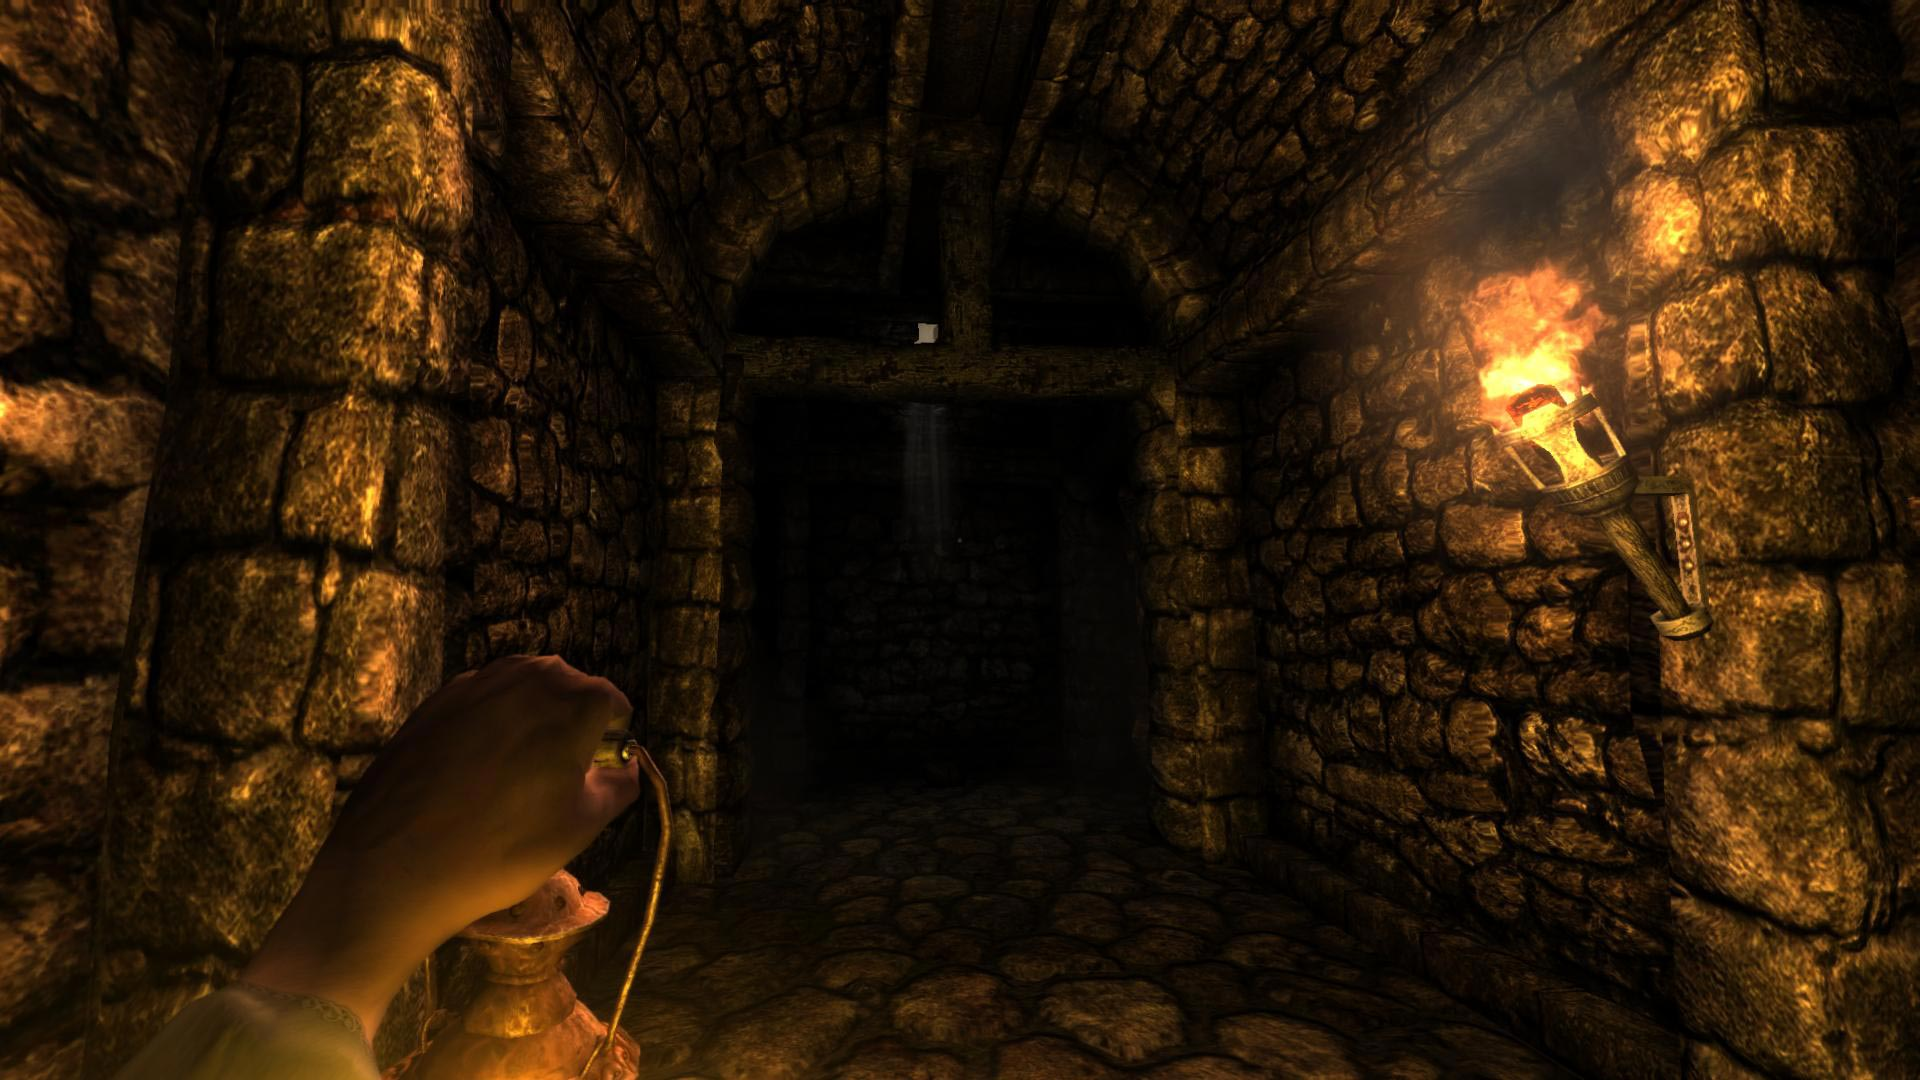 Amnesia: The Dark Descent relies heavily on its atmosphere, whereas Outlast 2 tends to rely on jump scares.